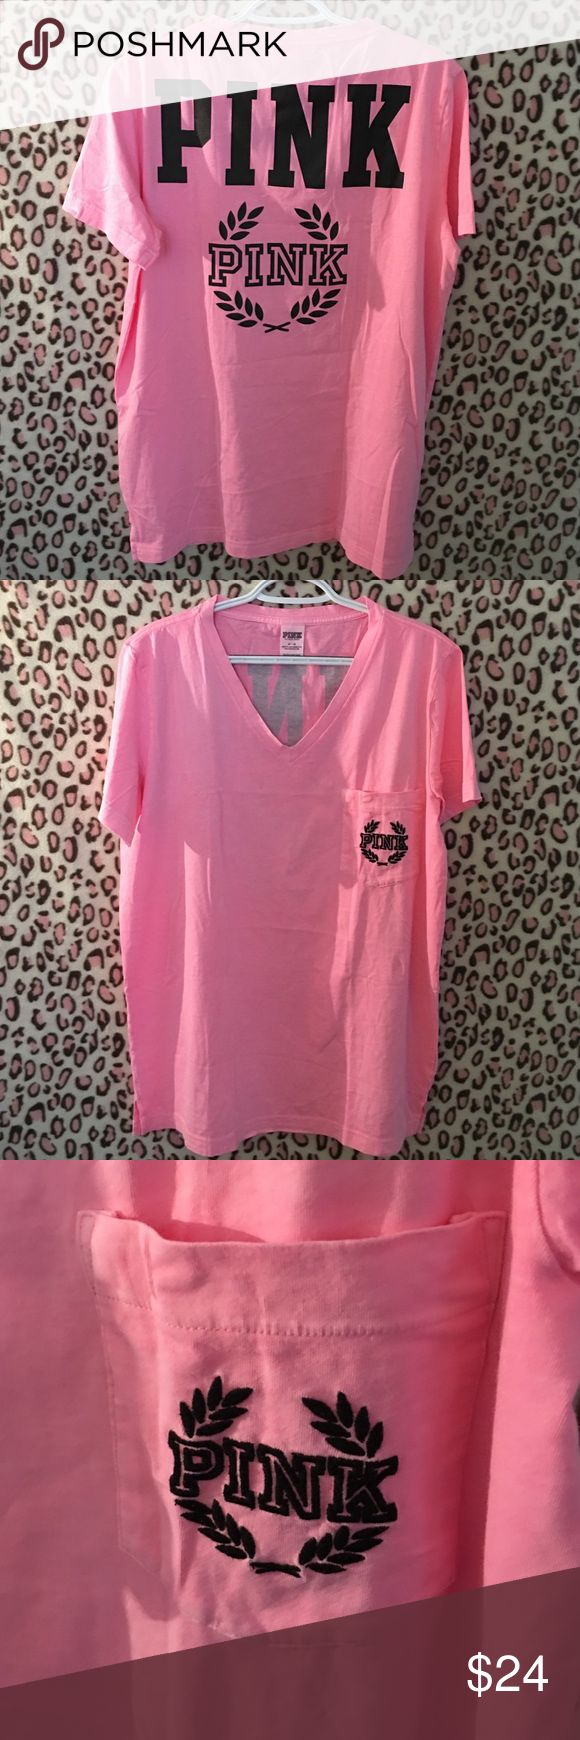 Campus V-Neck Tee PRICE FIRM Ordered from VS. I have never worn this, however, I did open the packaging in order to confirm size, & photograph garment. You will receive as it was originally folded and inside the plastic package that displays the upc and item codes; however, the plastic package will show that it has been open. Color: Beverly Hills Pink. Size: Medium (runs bigger-could fit Large). Brand: PINK PINK Victoria's Secret Tops